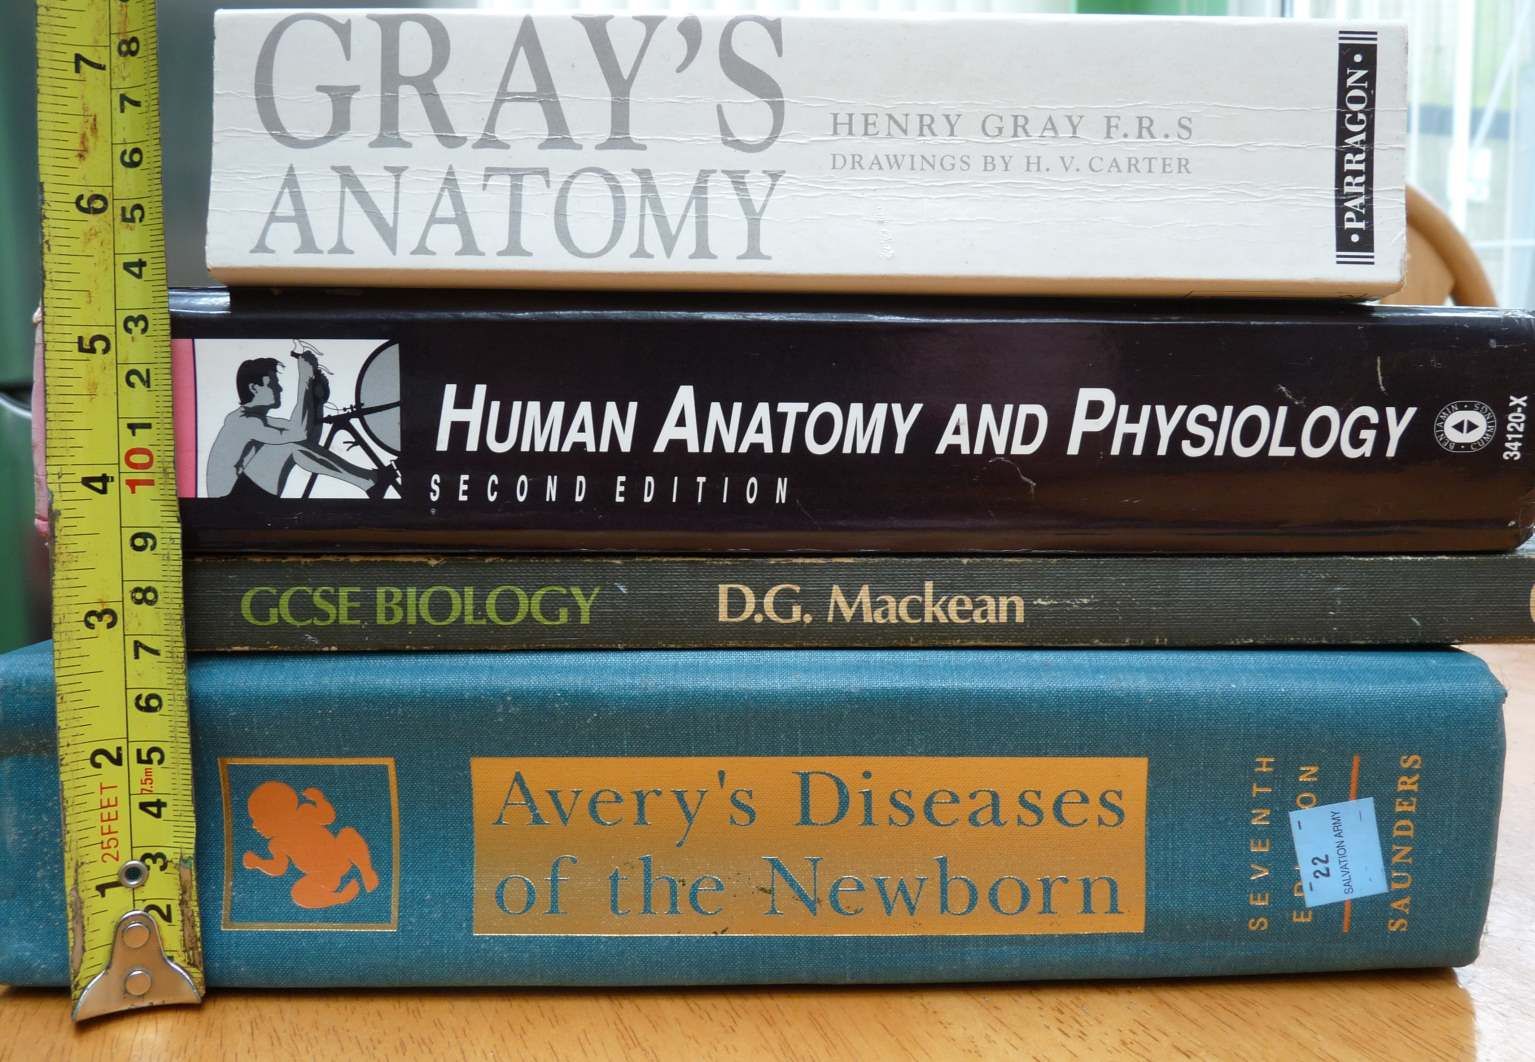 inclined_bed_therapy_book_stack_ibt.jpg - 191.34 kB